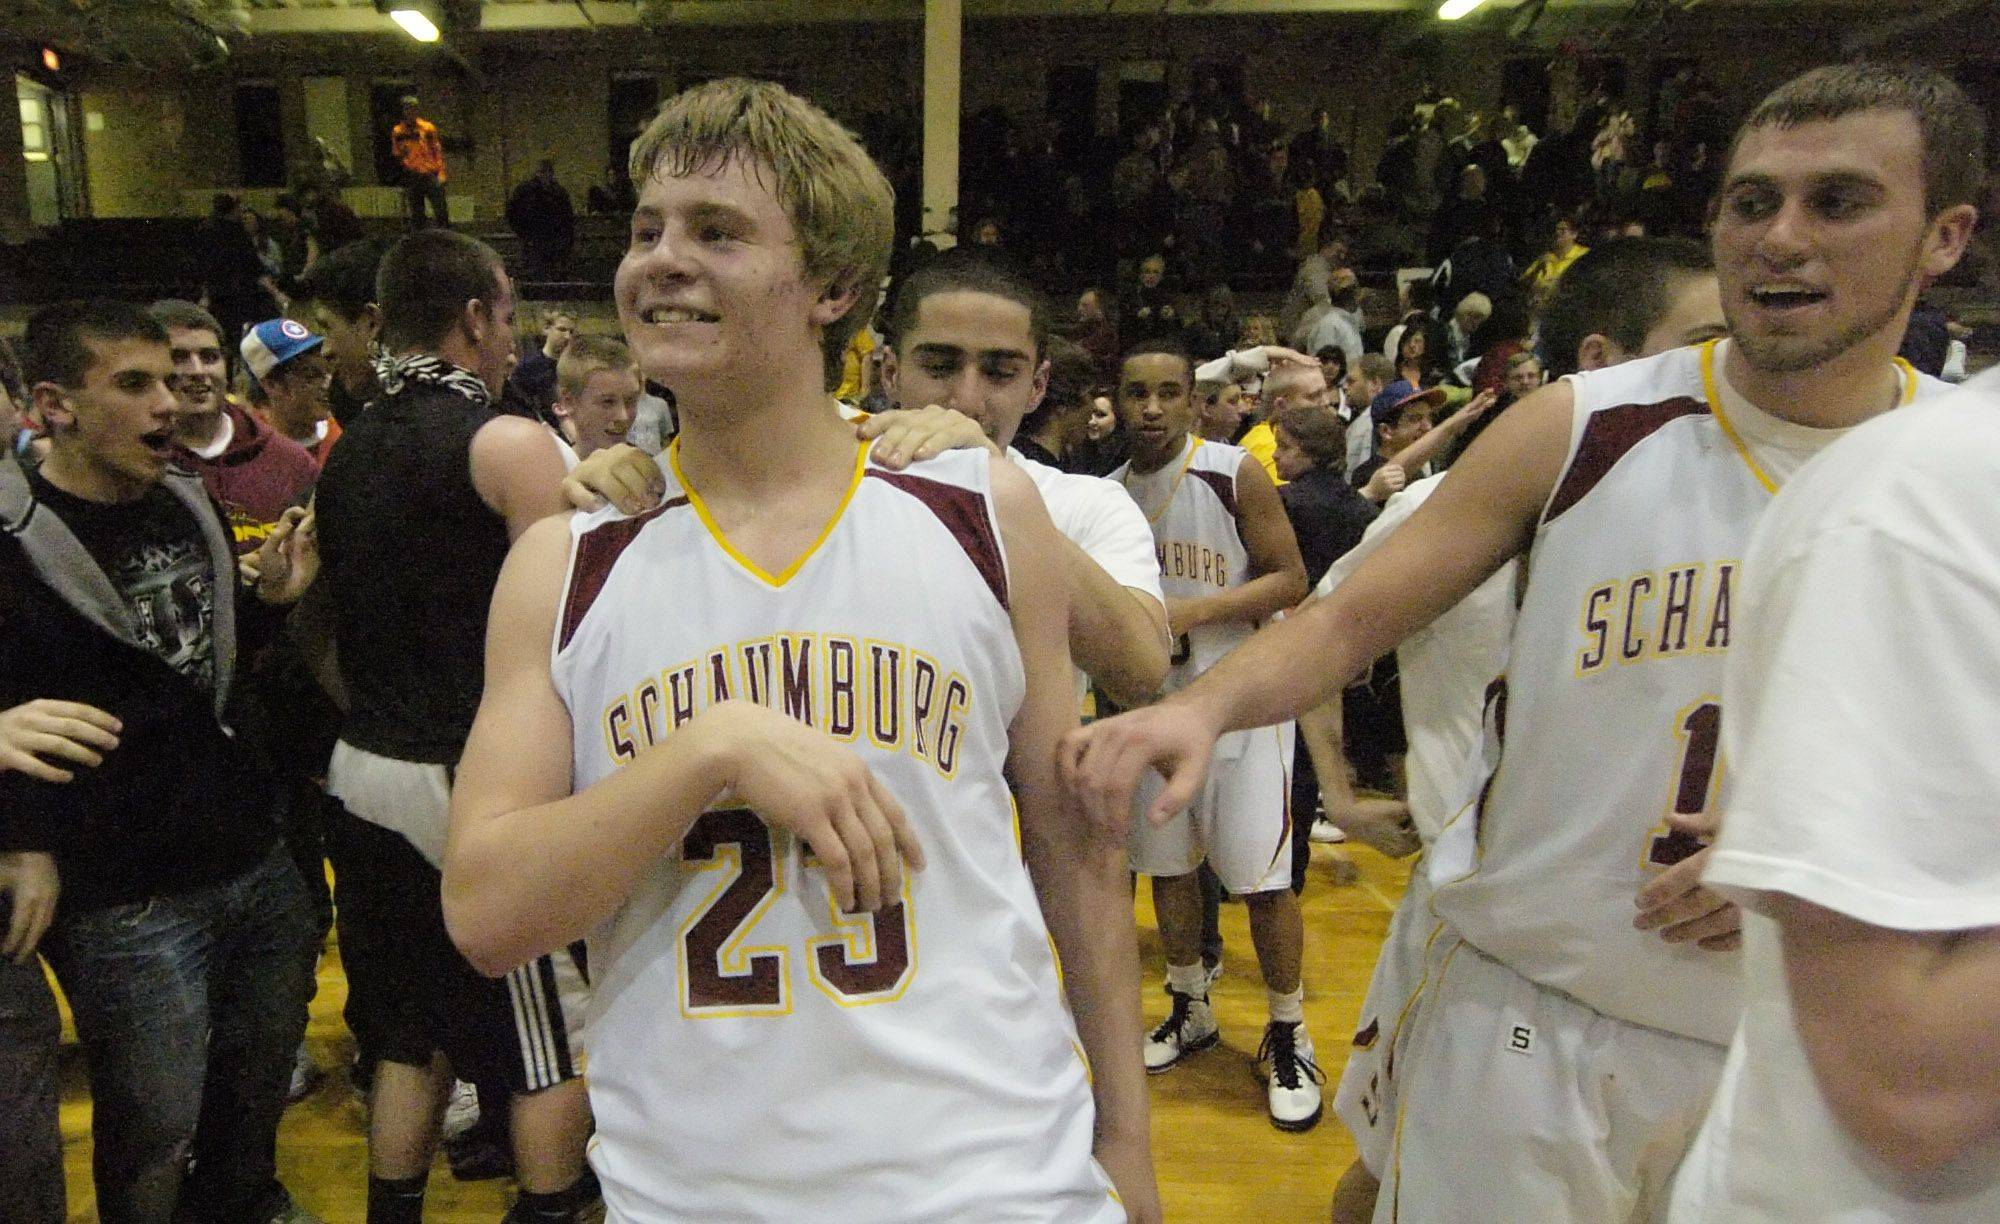 Schaumburg's Kyle Bolger, left, and teammate Christian Spandiary celebrate their team's victory over Niles West during Wednesday's sectional semifinal at New Trier.